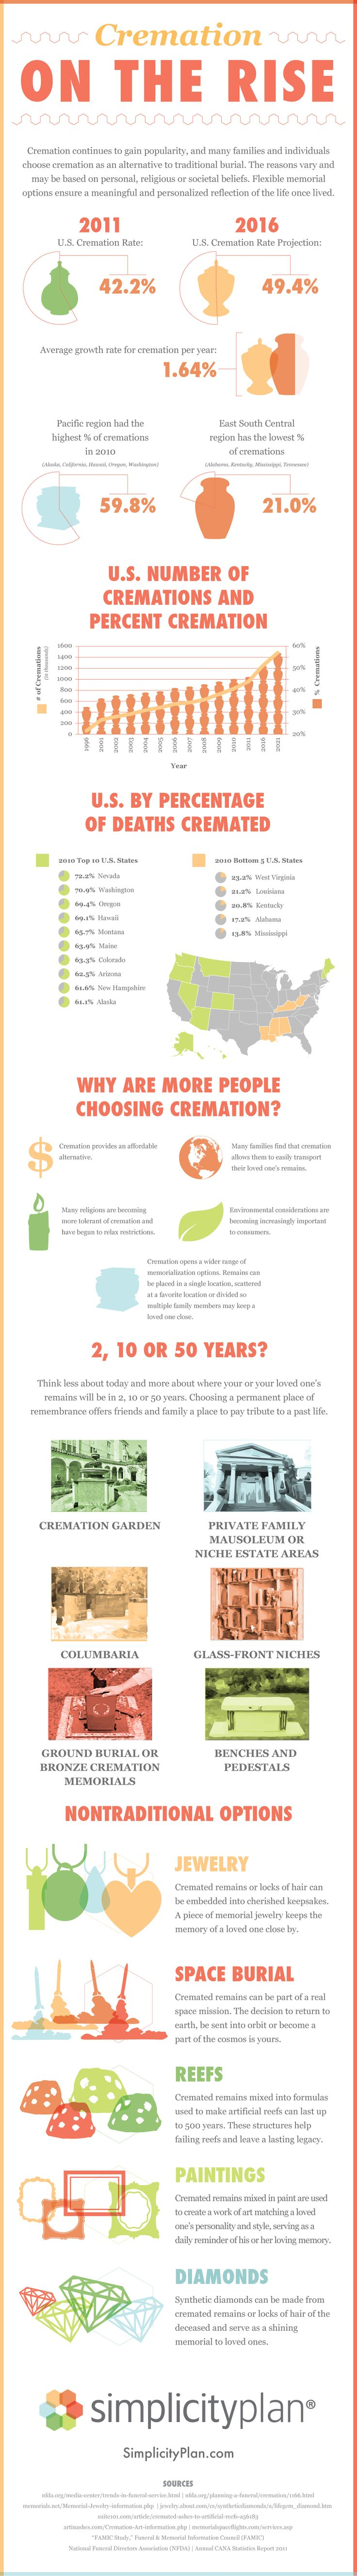 Infographic from SimplicityPlan.com detailing the latest cremation trends.